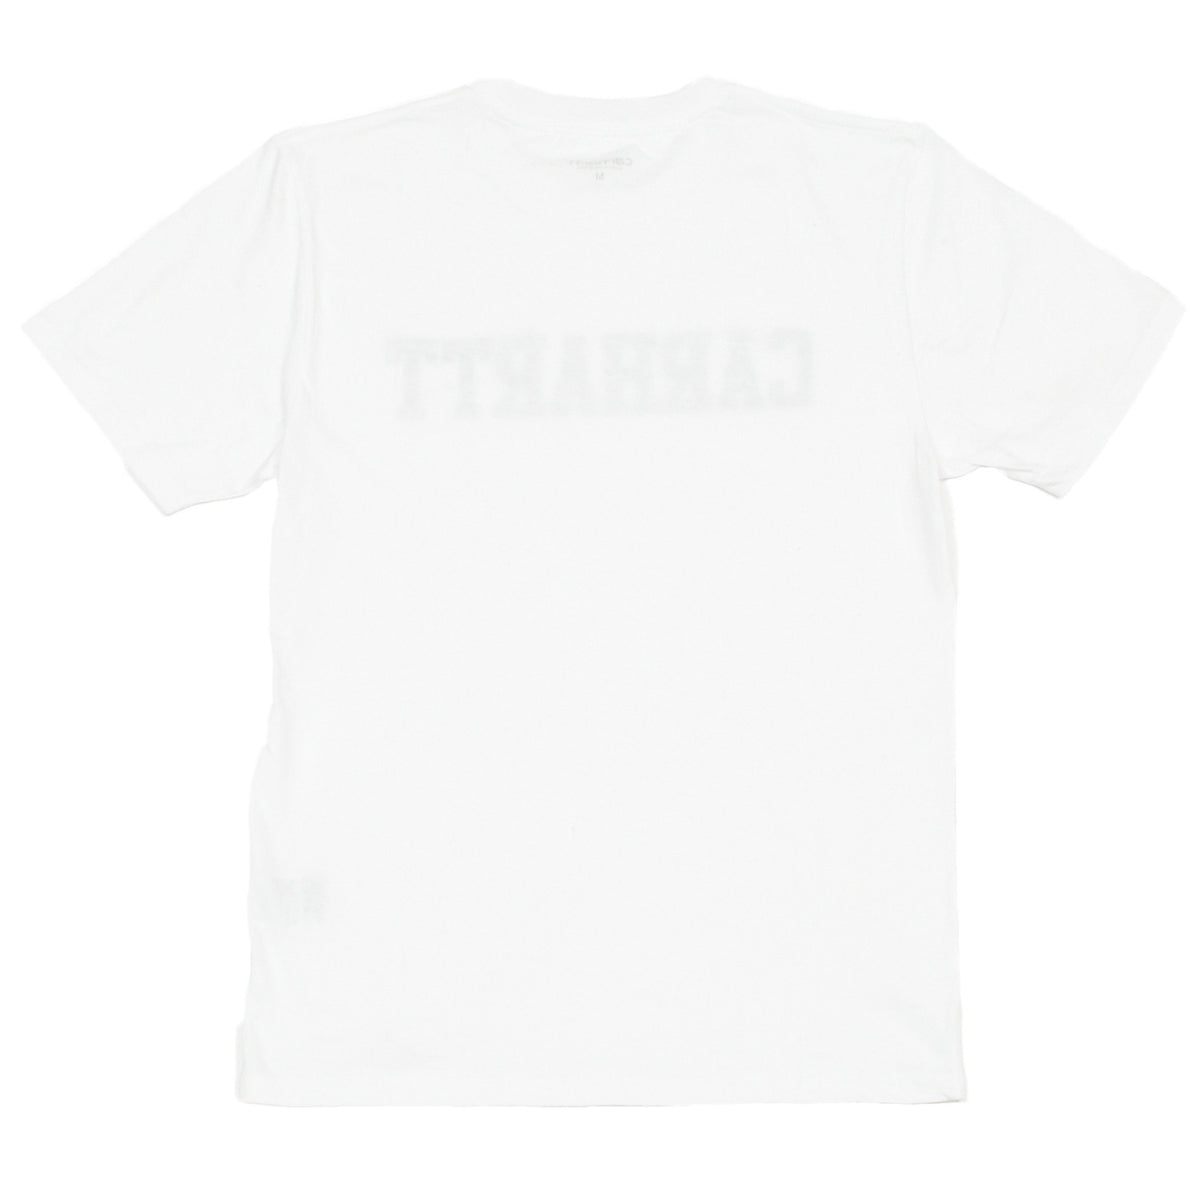 CARHARTT - SS COLLEGE T-SHIRT - WHITE / CAMO TIGER